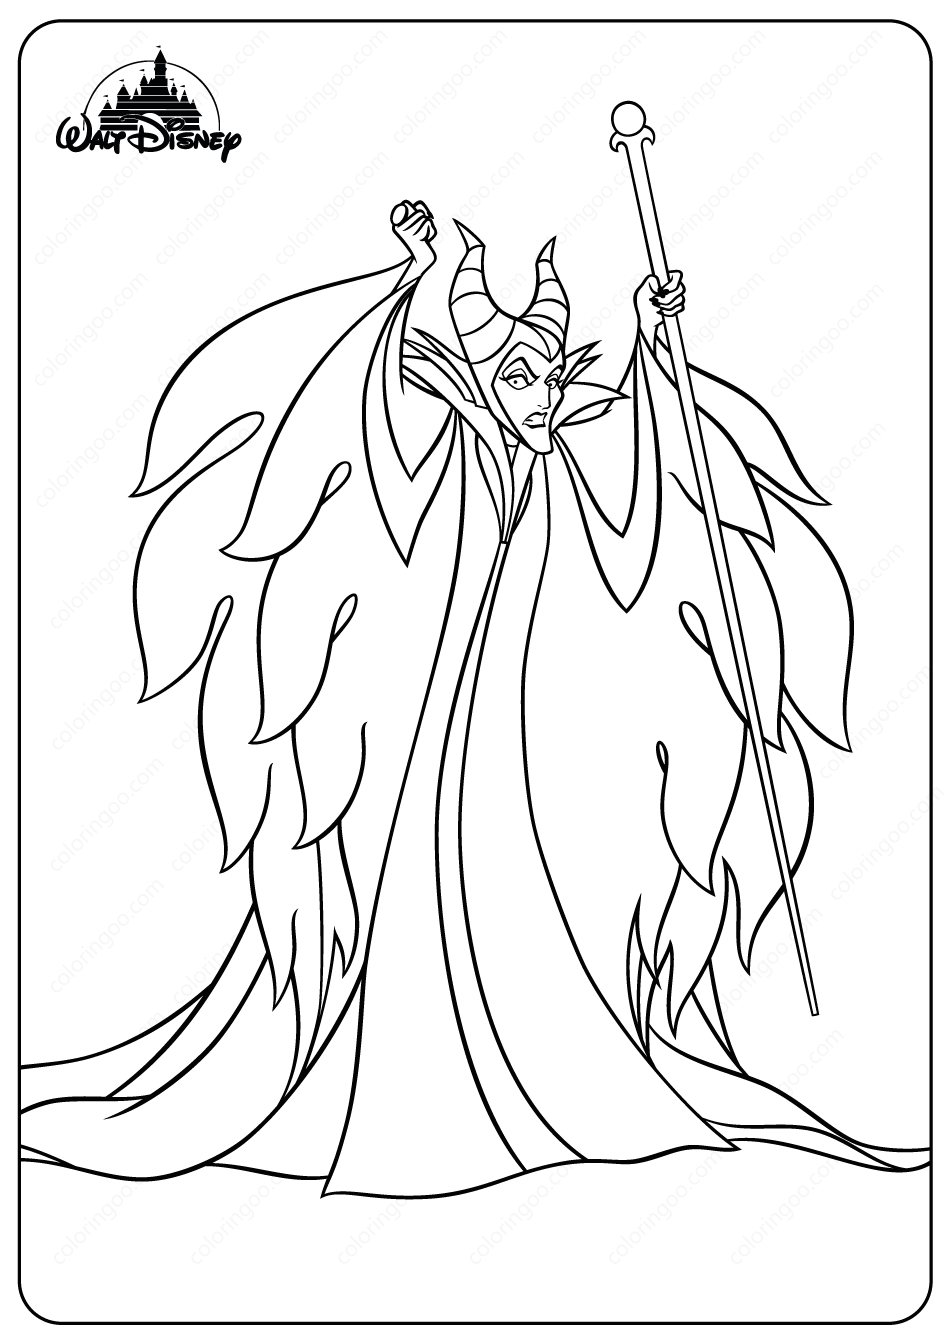 Disney Evil Fairy Maleficent Coloring Pages In 2020 Evil Fairy Rapunzel Coloring Pages Coloring Pages